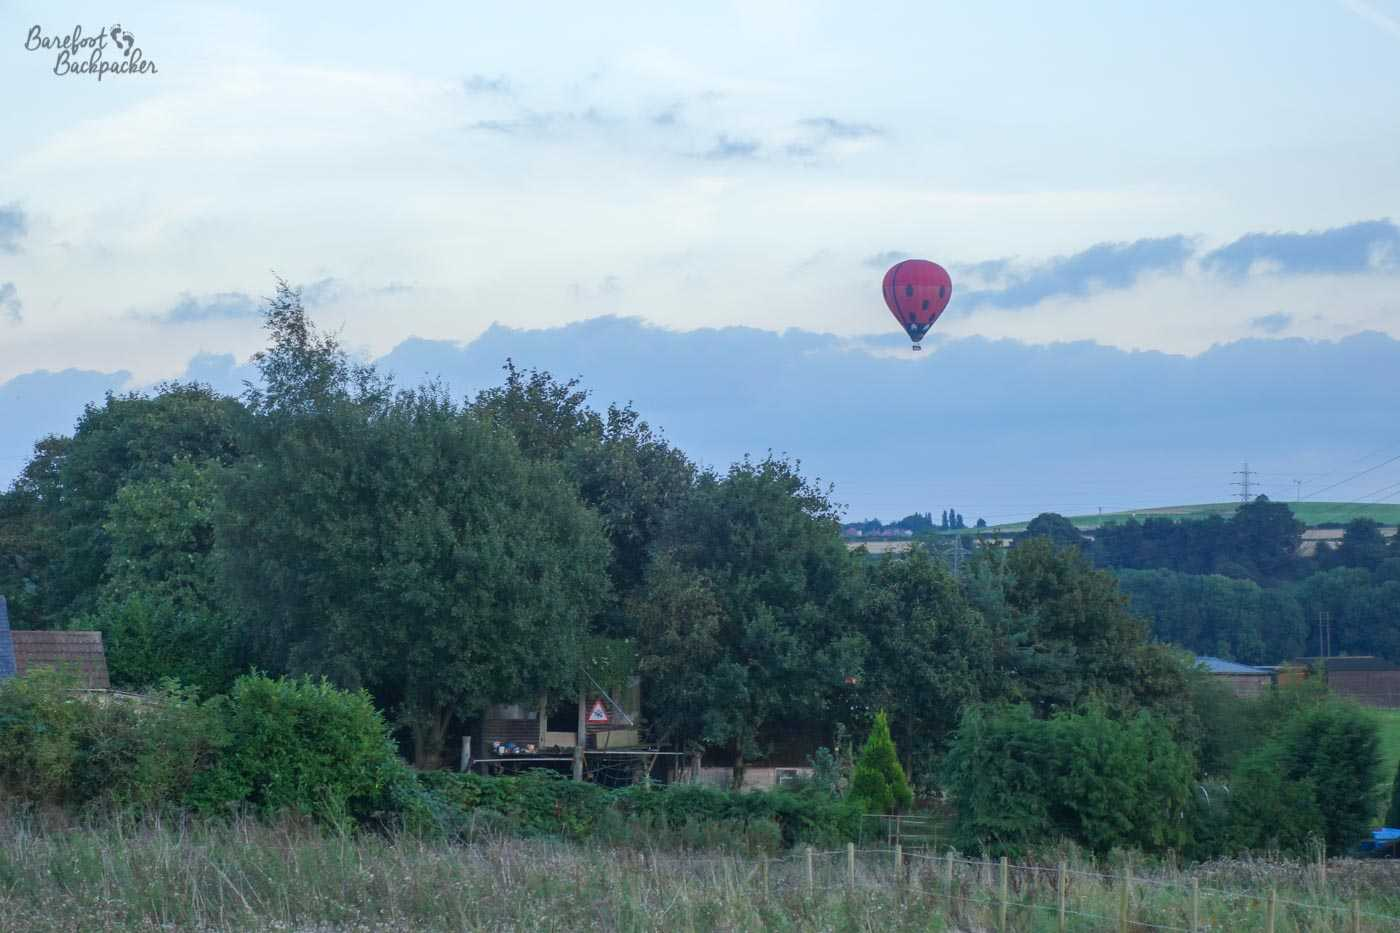 A hot air balloon, red with five black spots, floats in the early dusky skies over Kirkby-in-Ashfield, Nottinghamshire, England. The sky is largely clear with just a layer of faint white cloud. The balloon is floating over a landscape of trees, fields, low hills, and electricity pylons. Parts of a house are visible on the left.